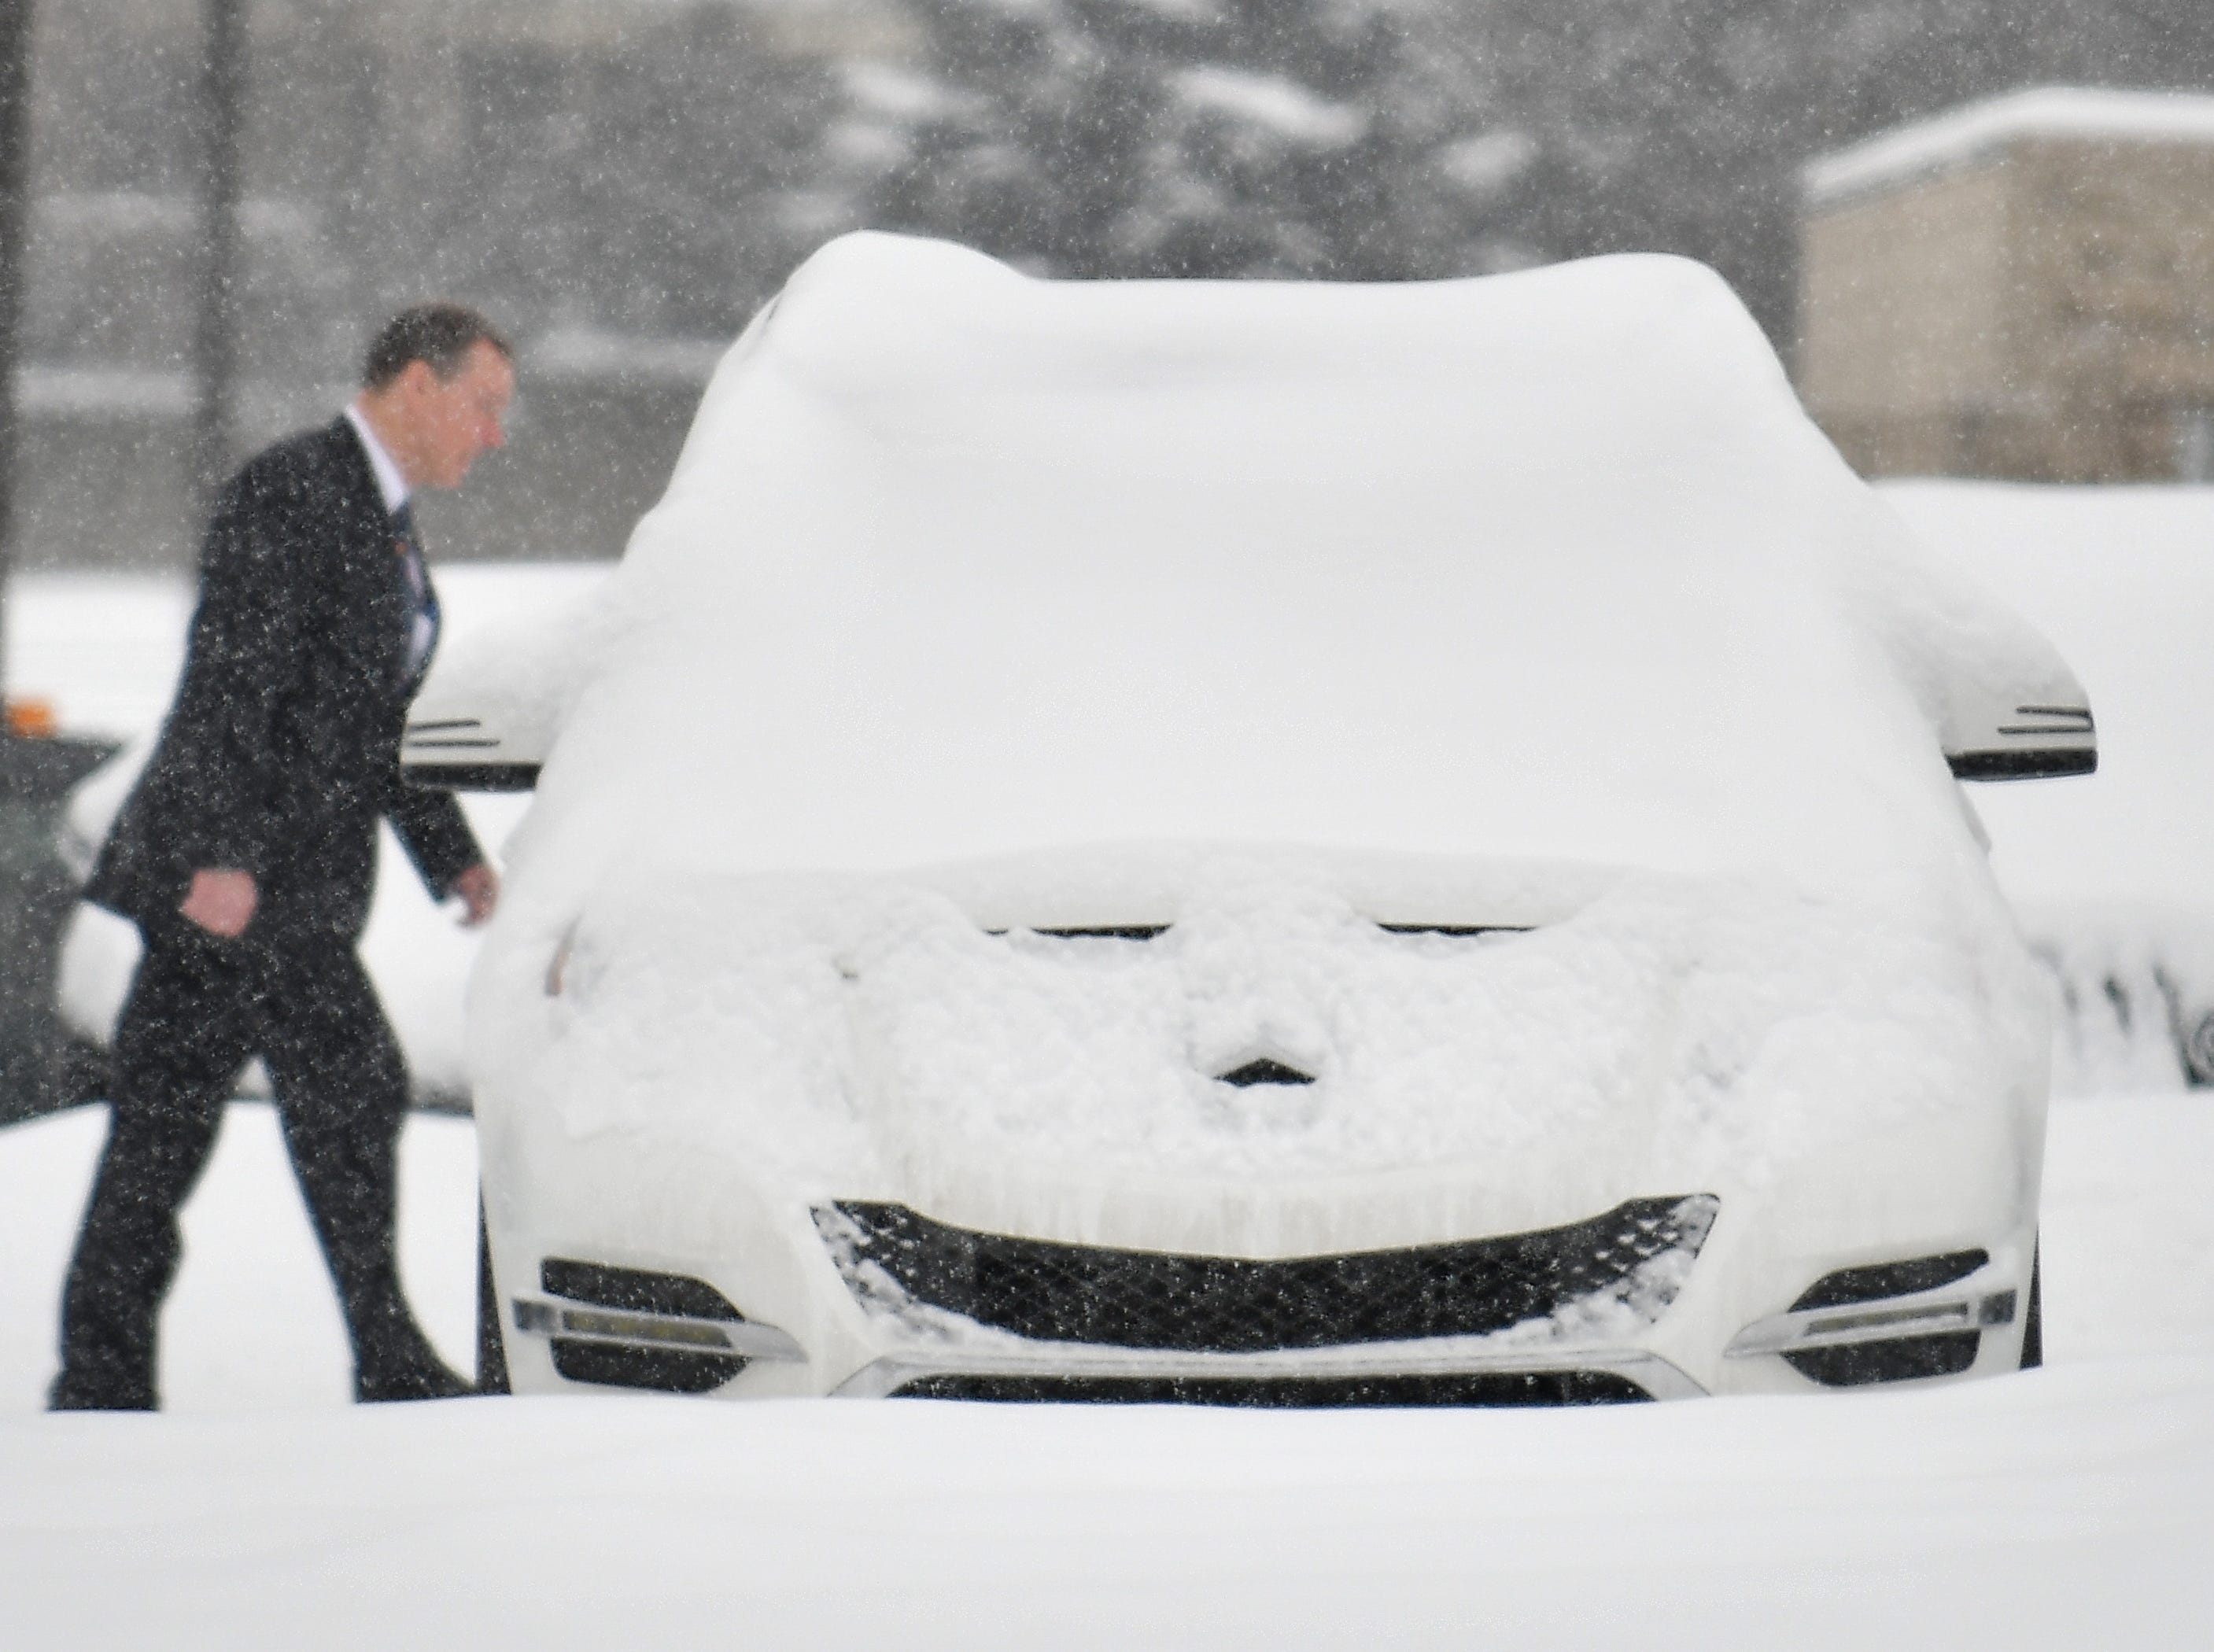 A Mercedes GLK 350 puts on a happy face at Mercedes-Benz of Rochester on February 9, 2018.